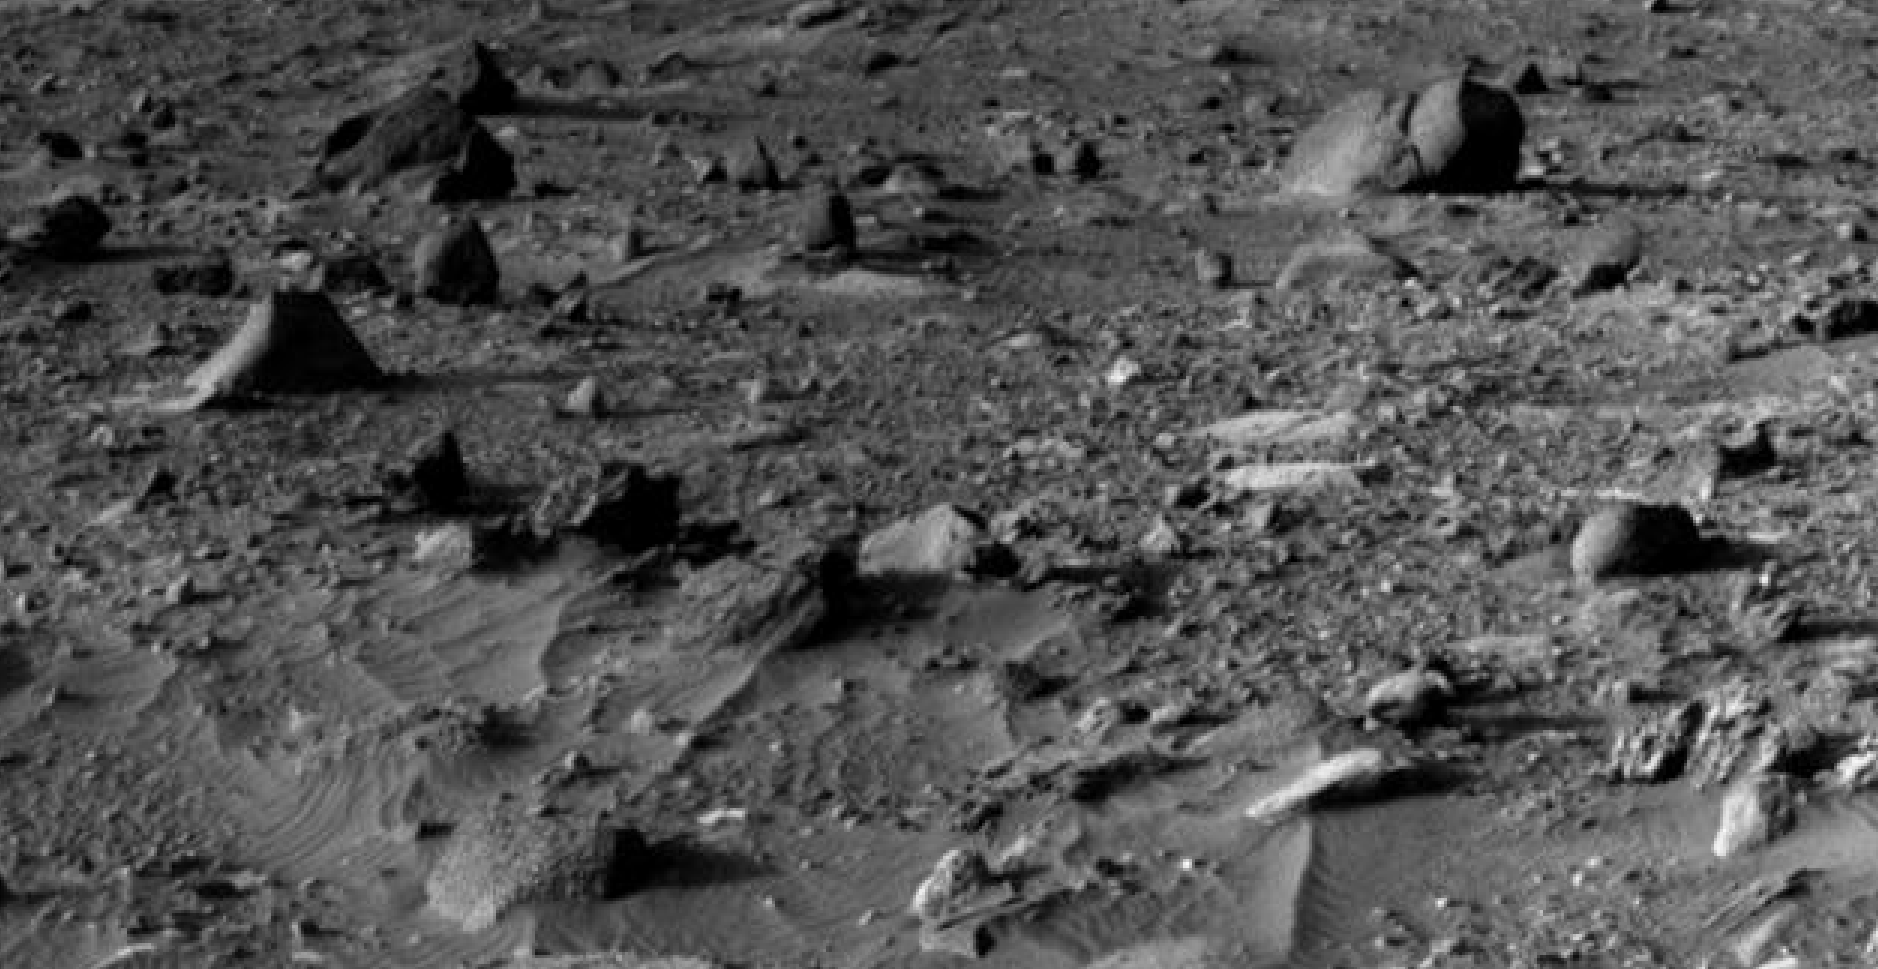 mars sol 1405 anomaly artifacts 14 was life on mars